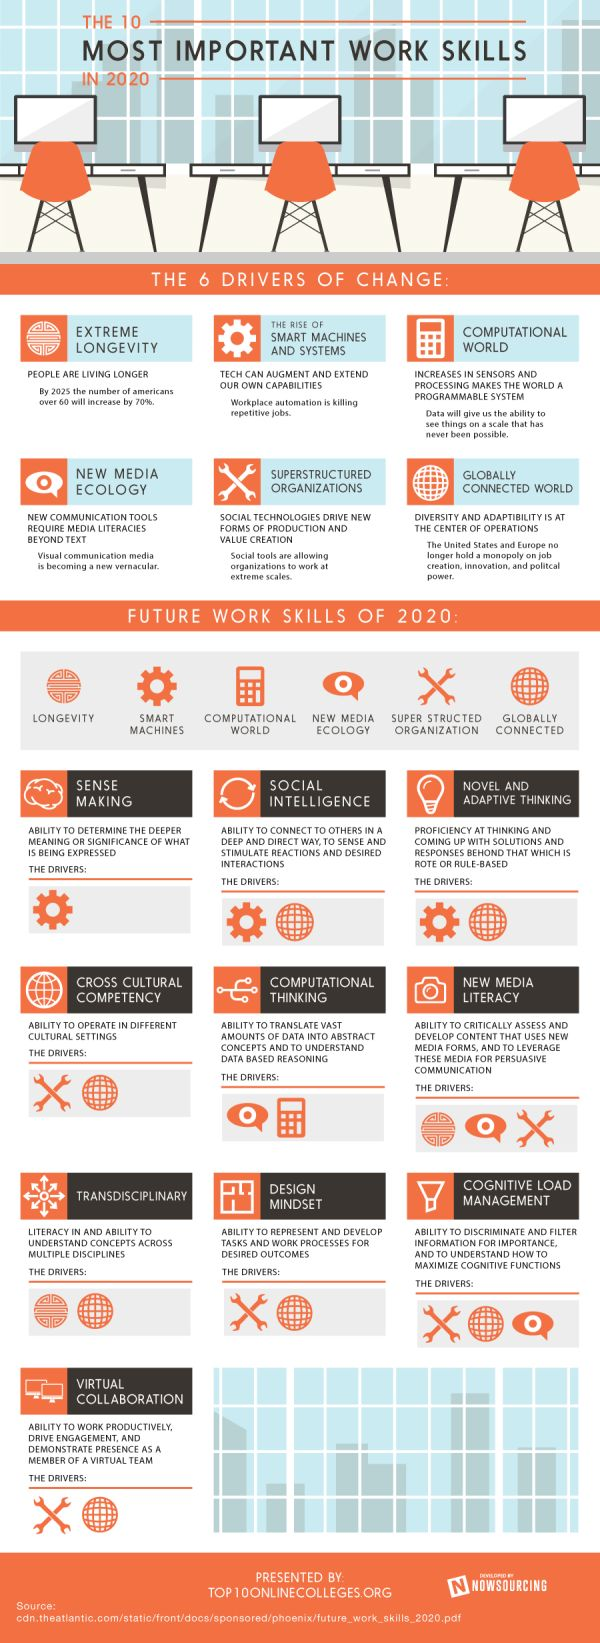 10 Critical Skills You'll Need to Succeed at Work in 2020 | Inc.com